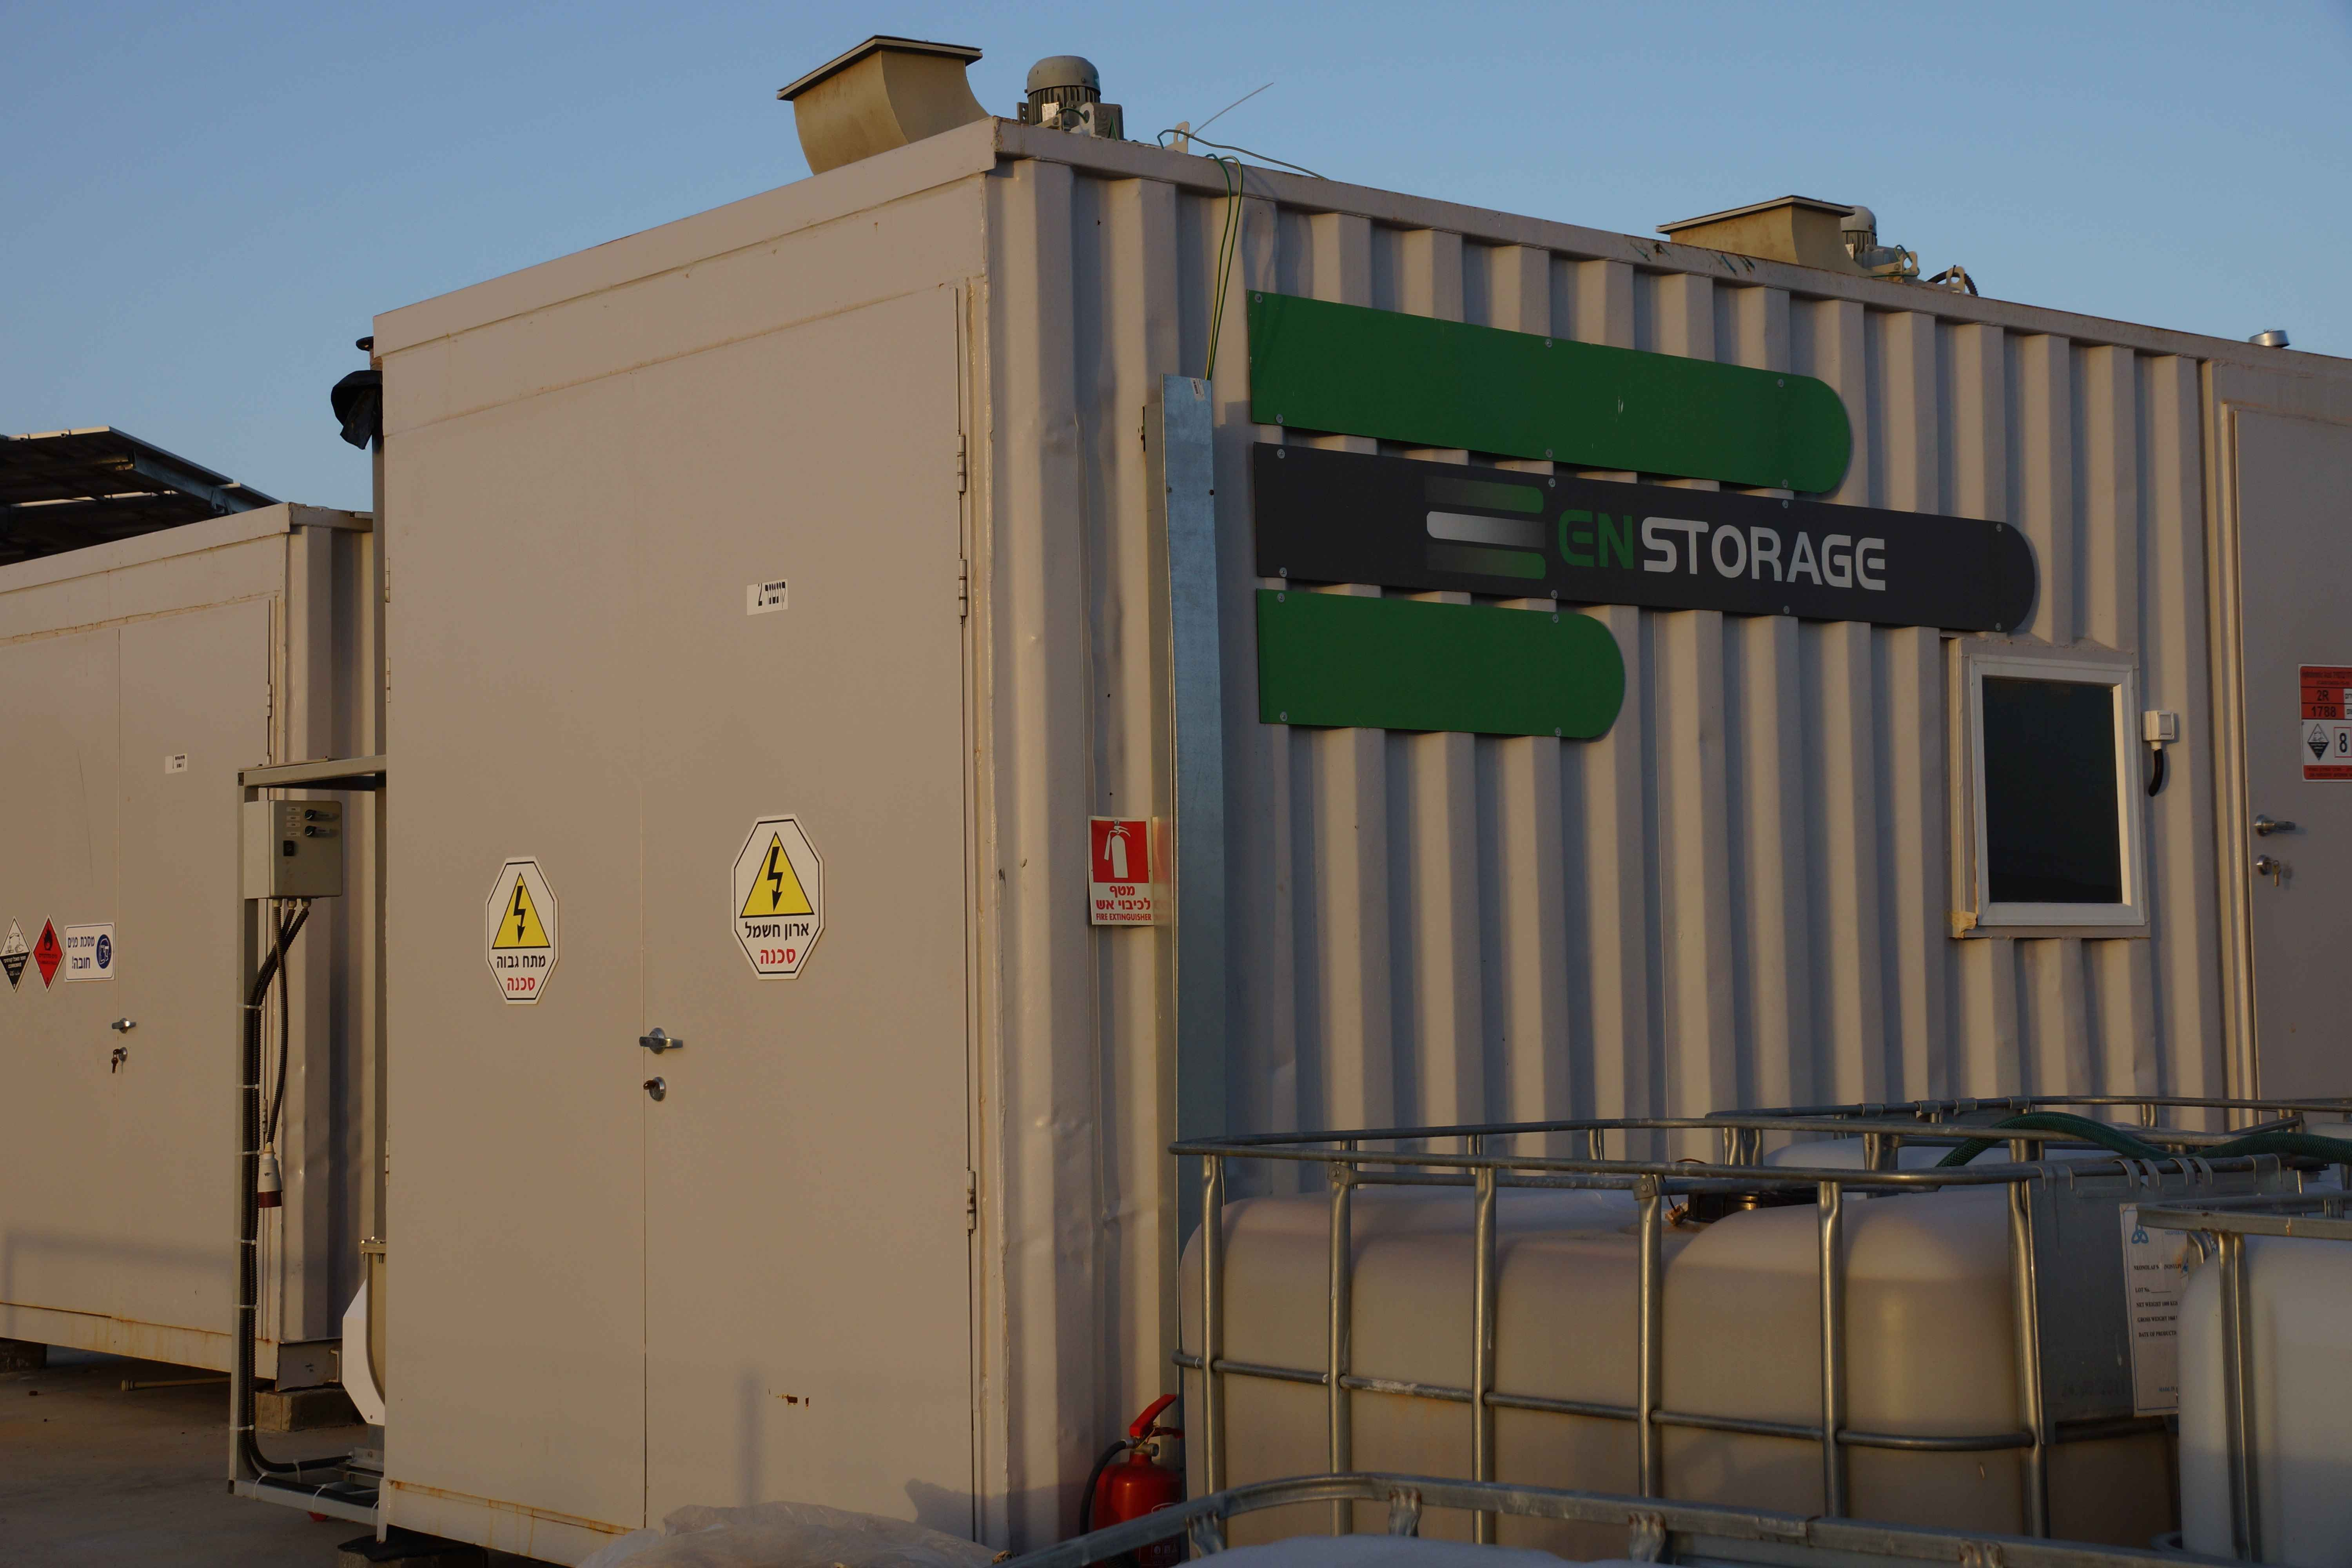 enstorage 50KW demonstrator HBr battery storage